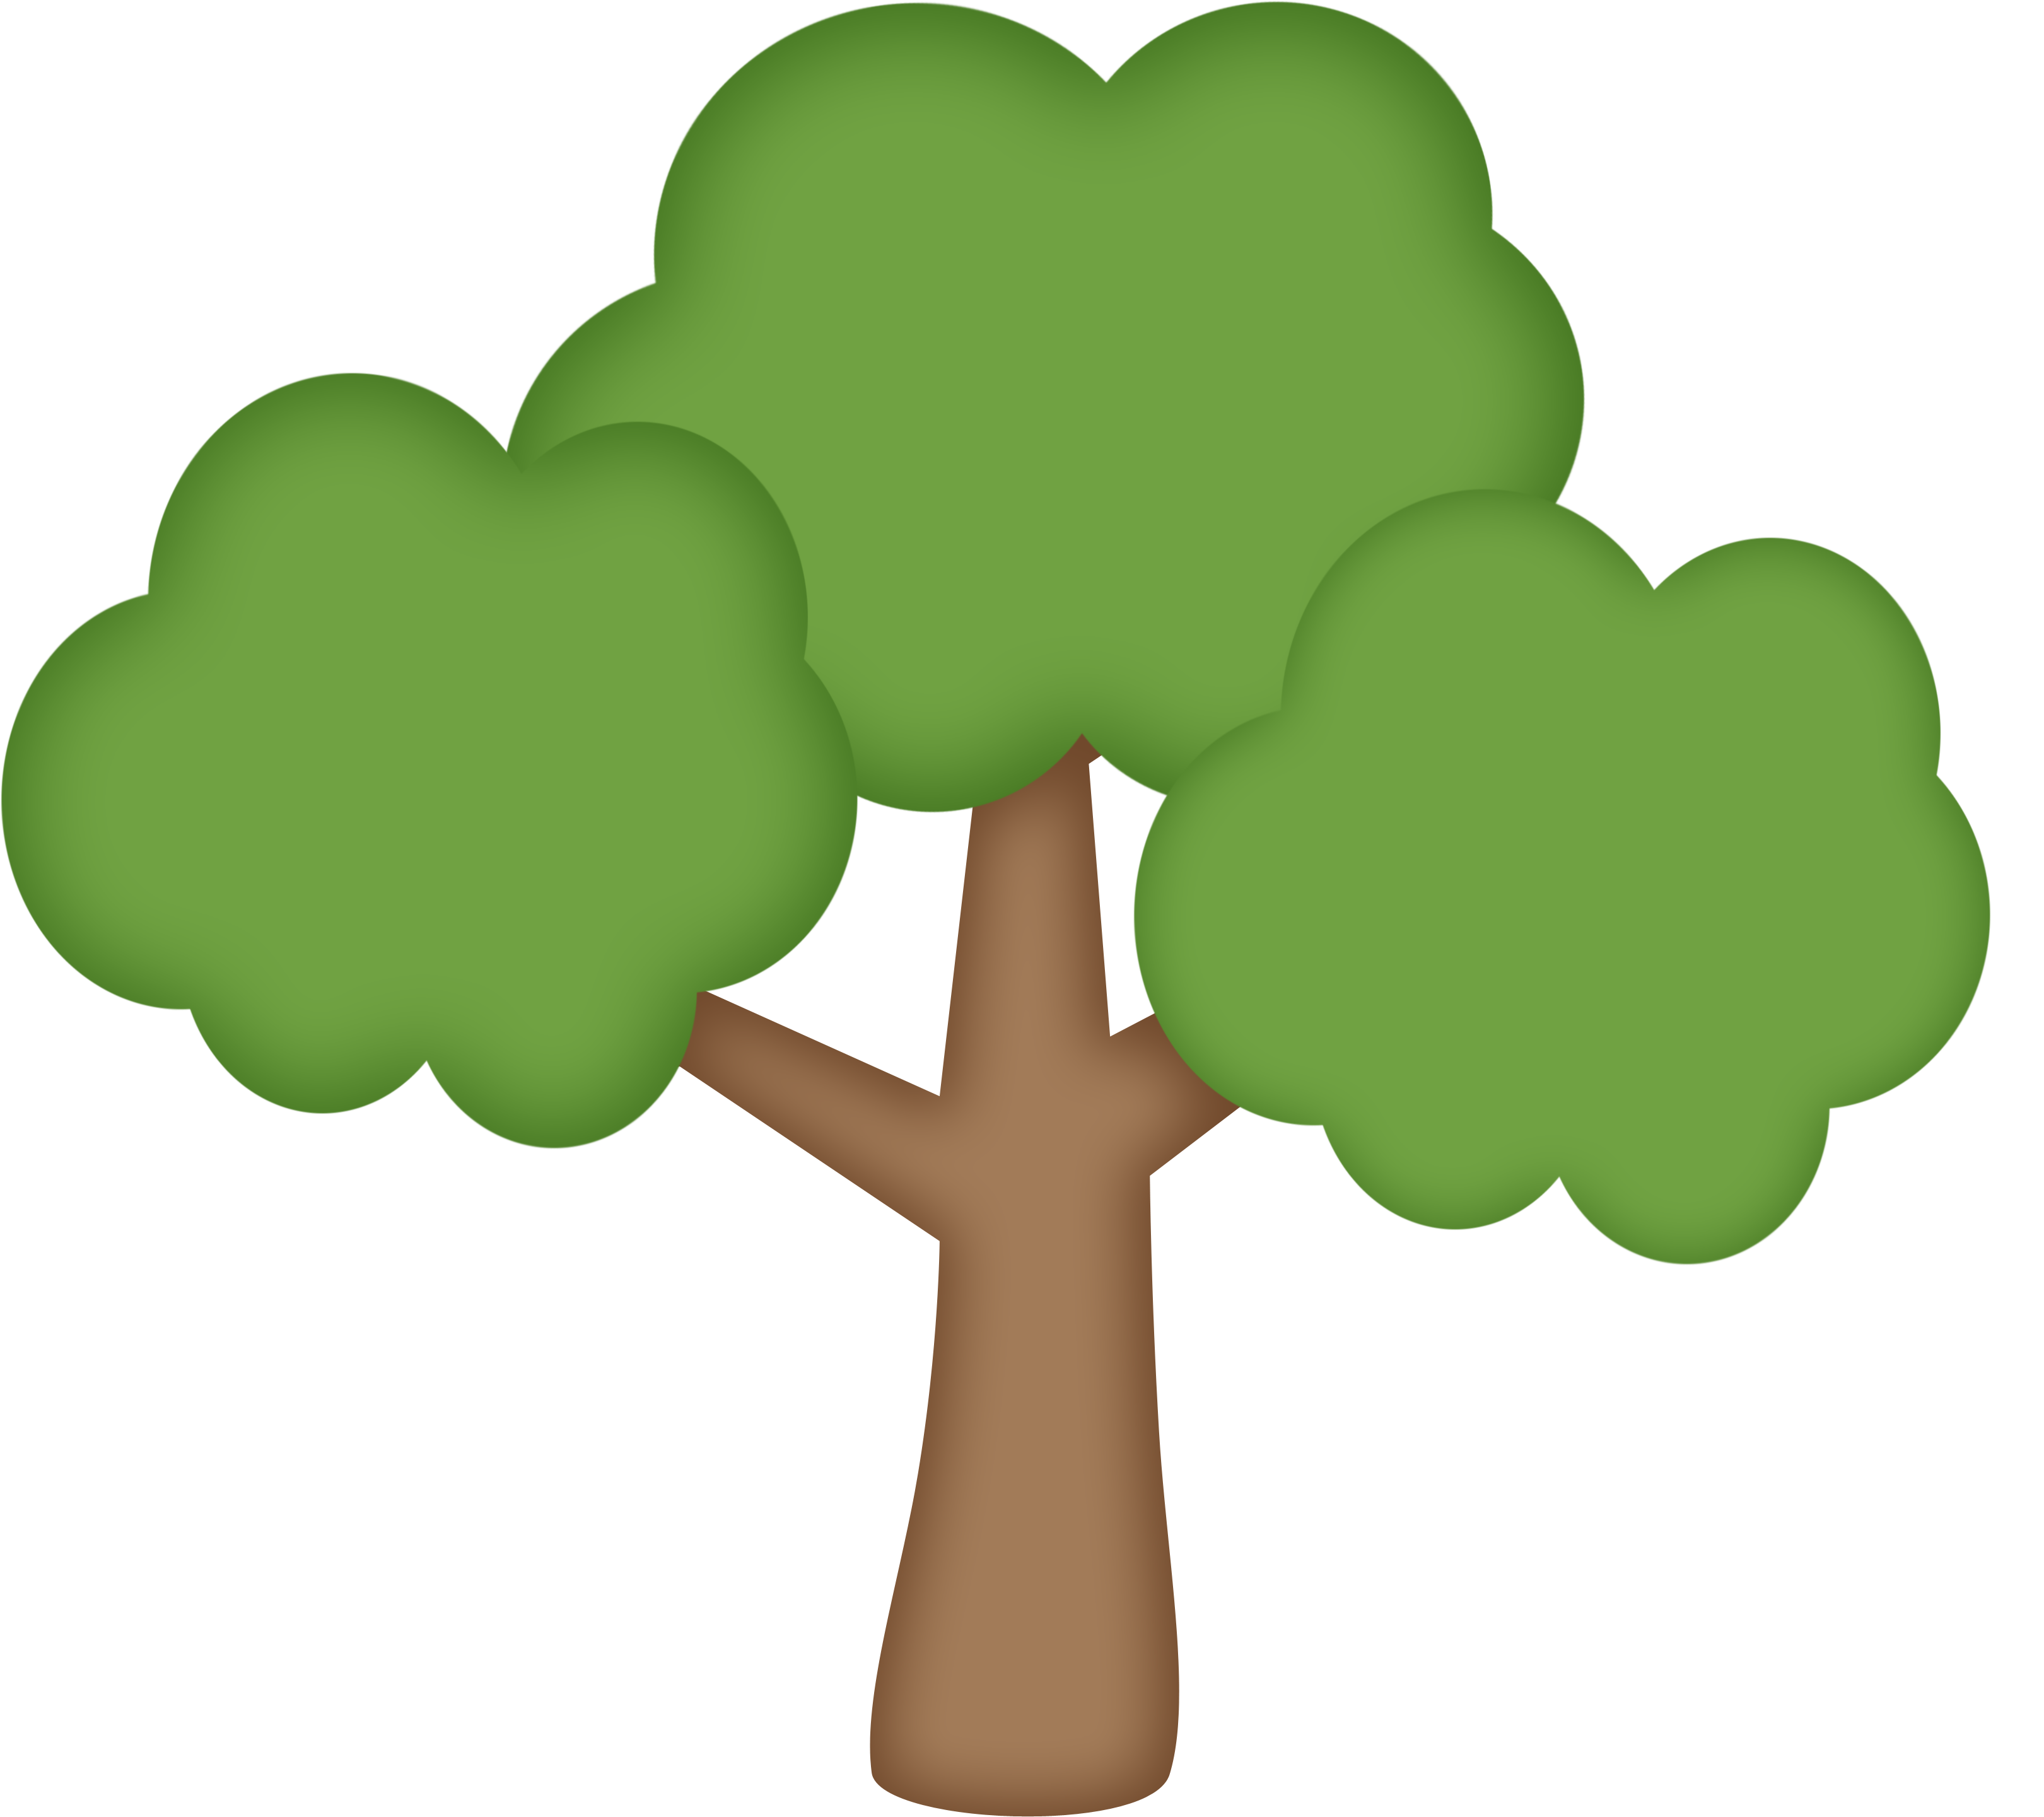 Family Tree Drawing Png Free Family Tree Drawing Png Transparent Images 63999 Pngio